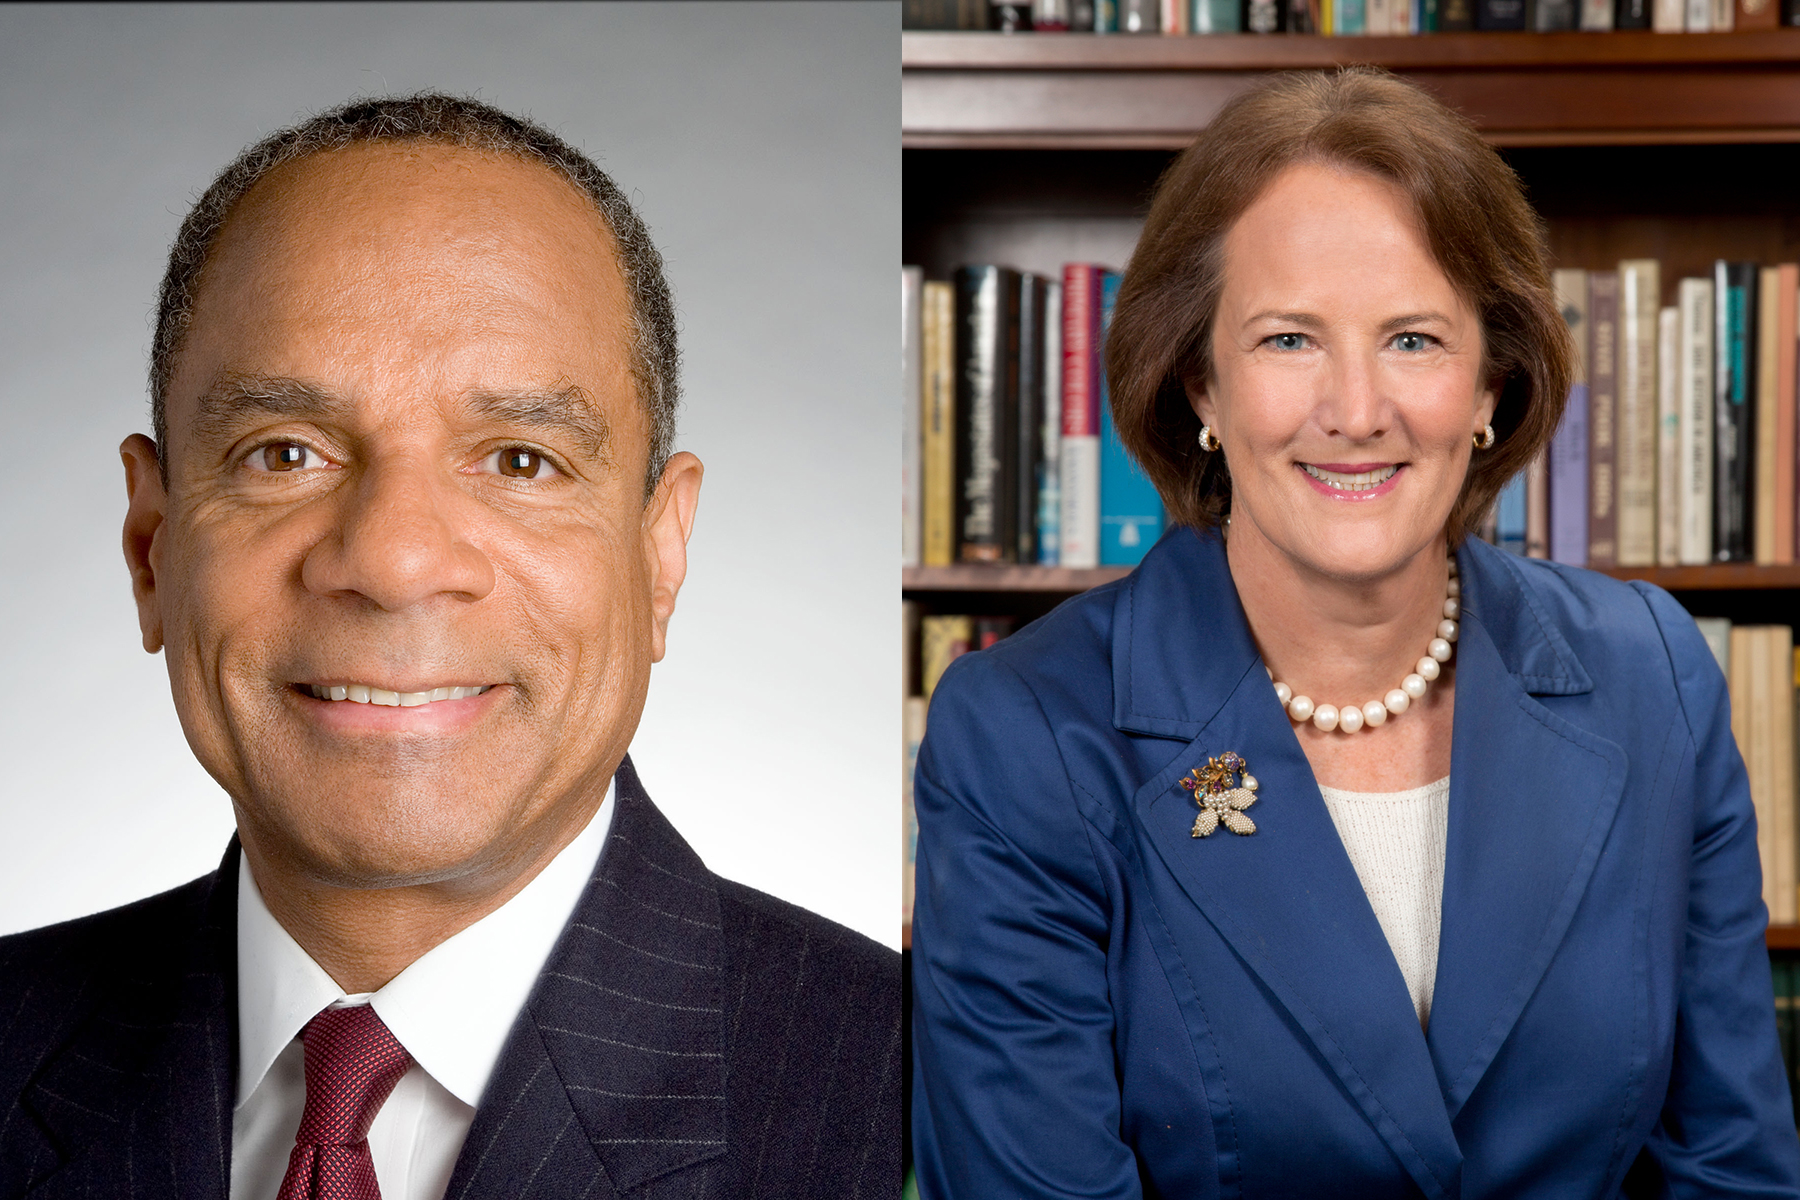 American Express Company CEO Kenneth I. Chenault and former Obama Cabinet member Karen Gordon Mills '75 were elected to become the newest members of the Harvard Corporation, the University's highest governing body, Feb. 9.